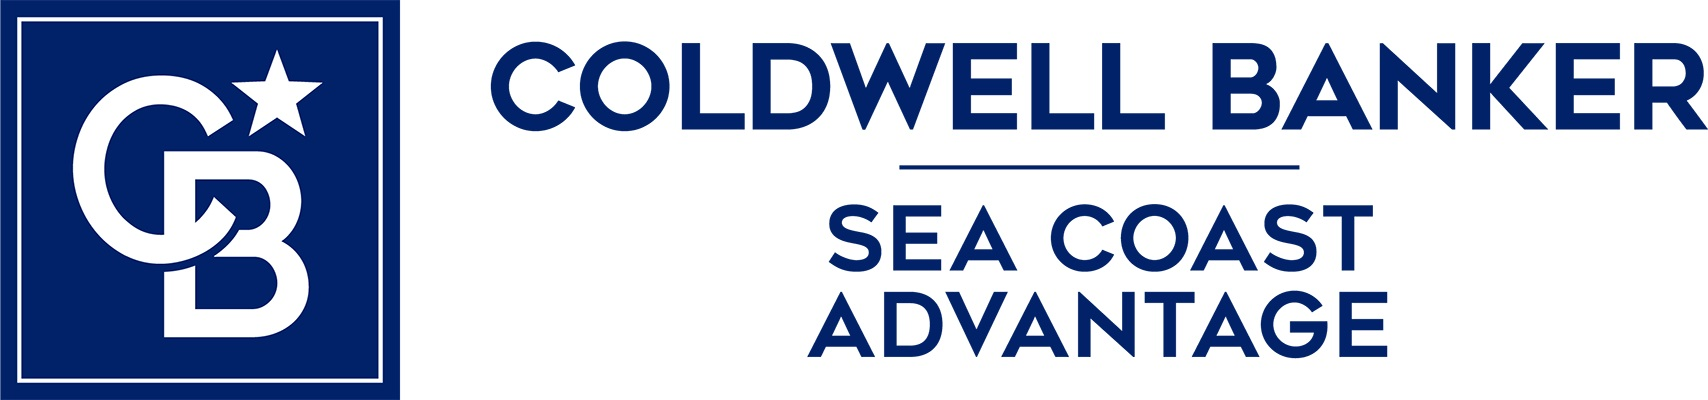 Brunswick Brokers - Coldwell Banker Sea Coast Advantage